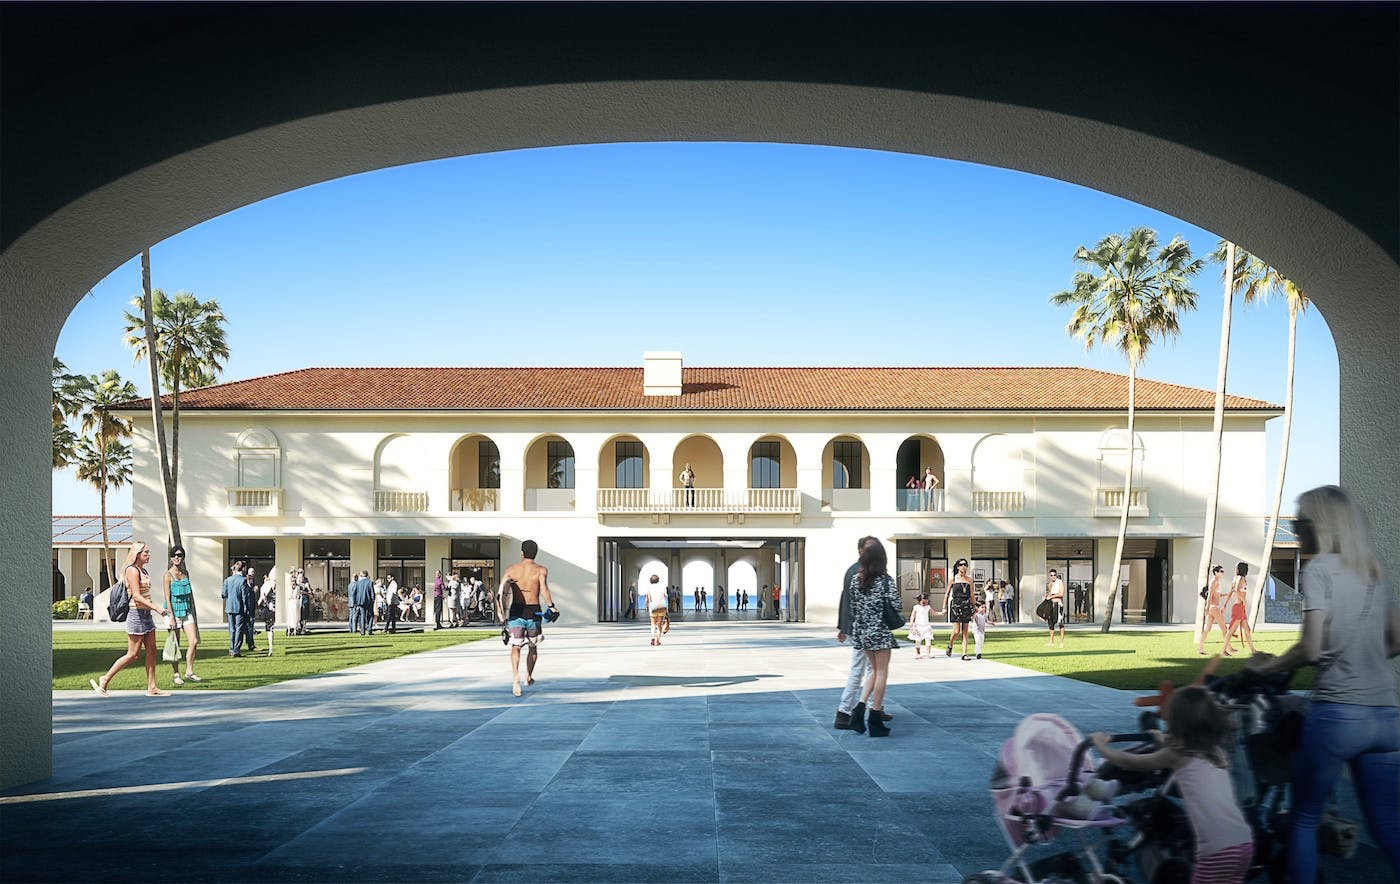 Proposed Entry